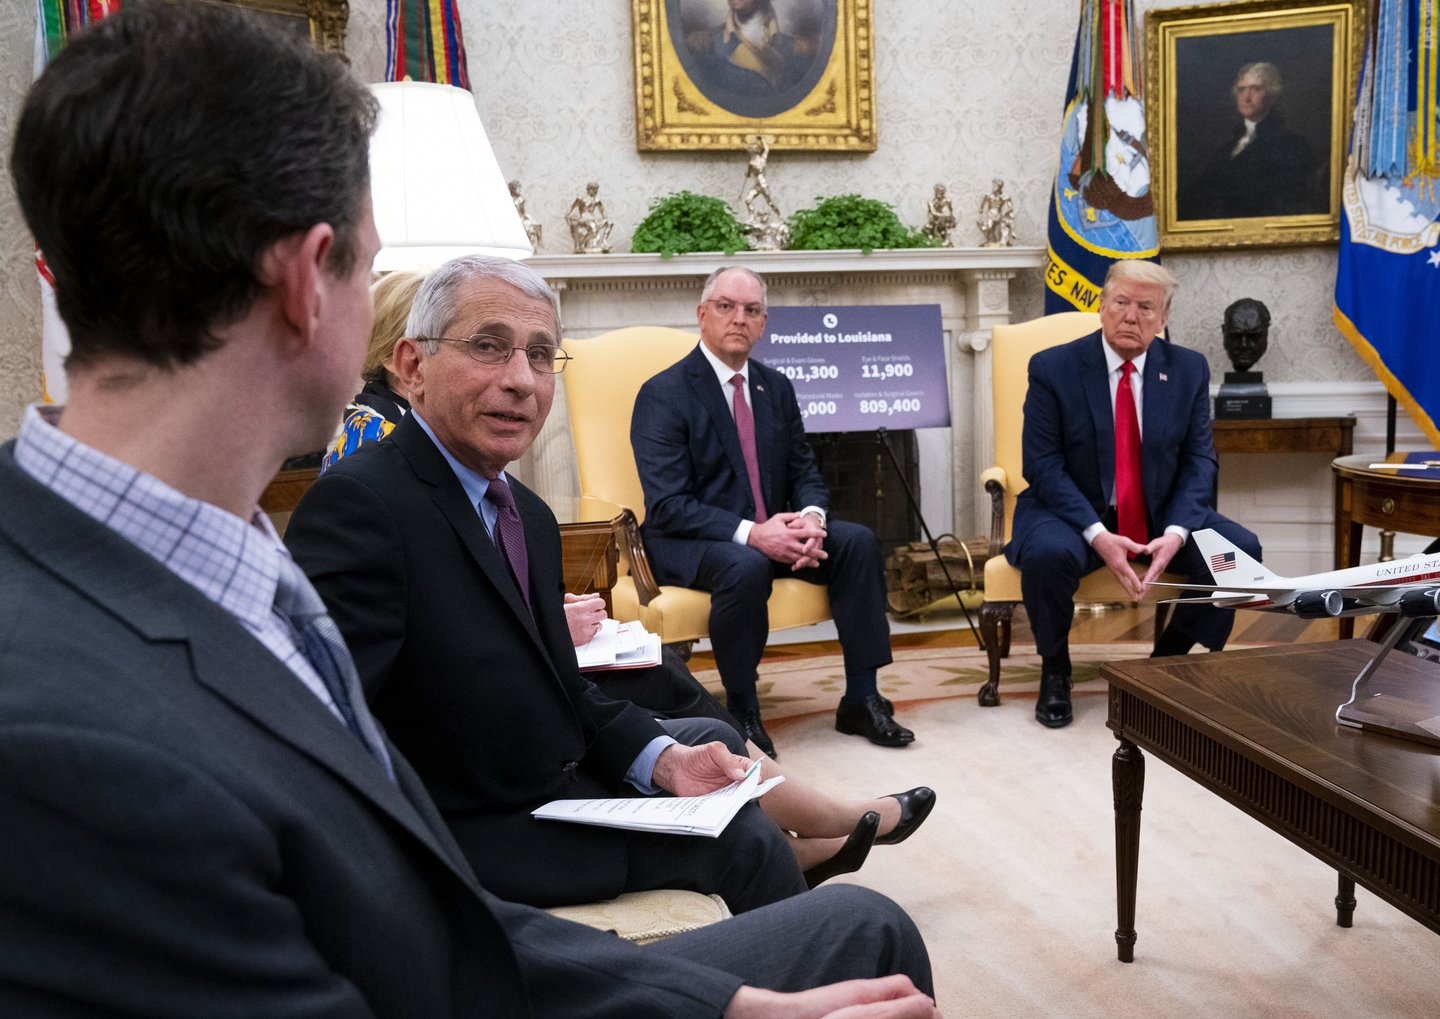 President Trump Meets With Louisiana Governor John Bel Edwards At White House